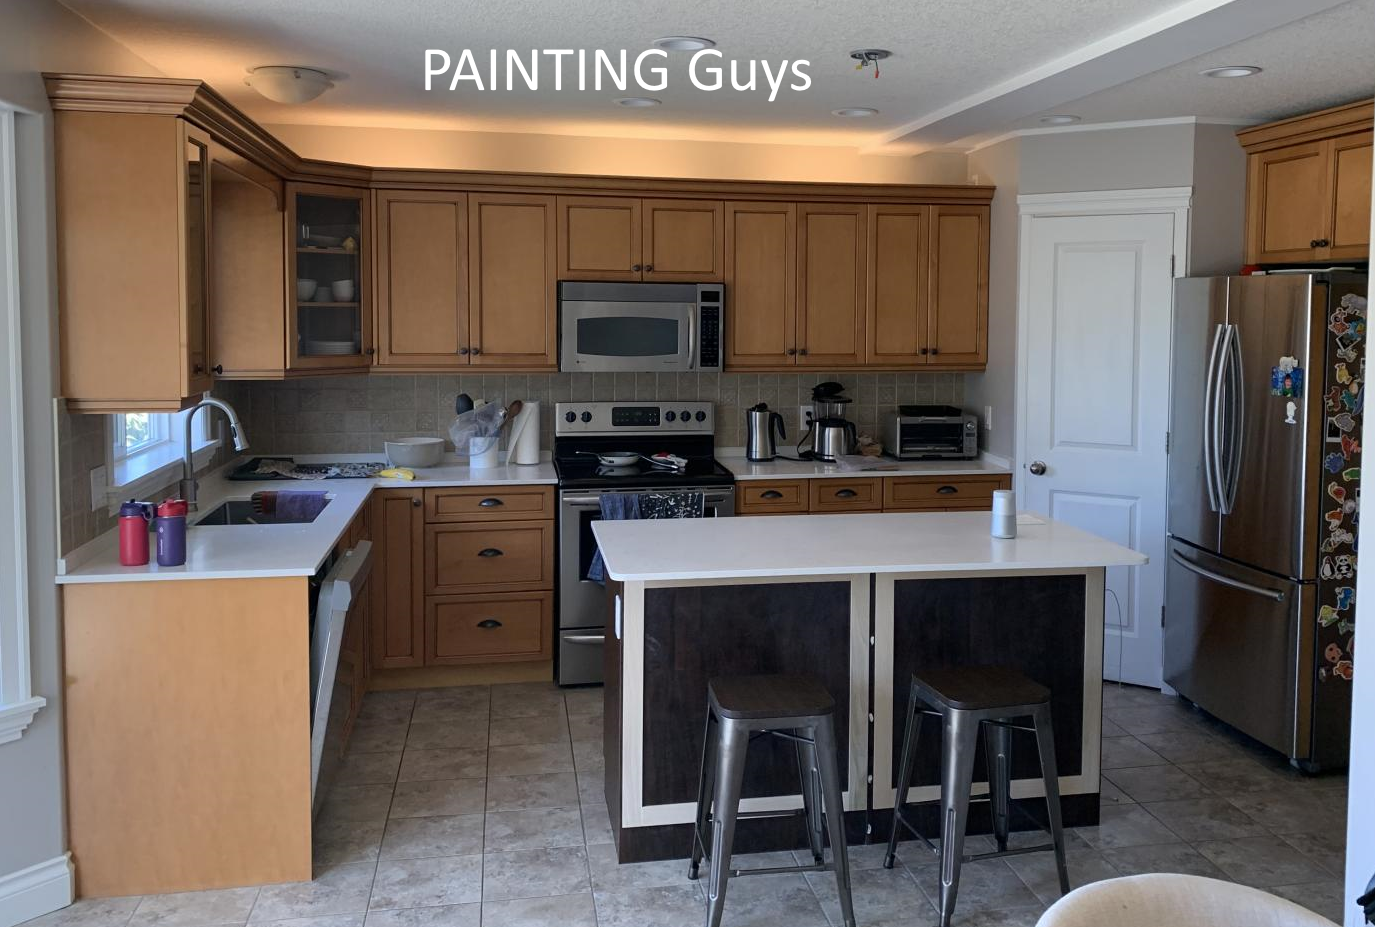 Nanaimo white kitchen cabinet painting PAINTING Guys